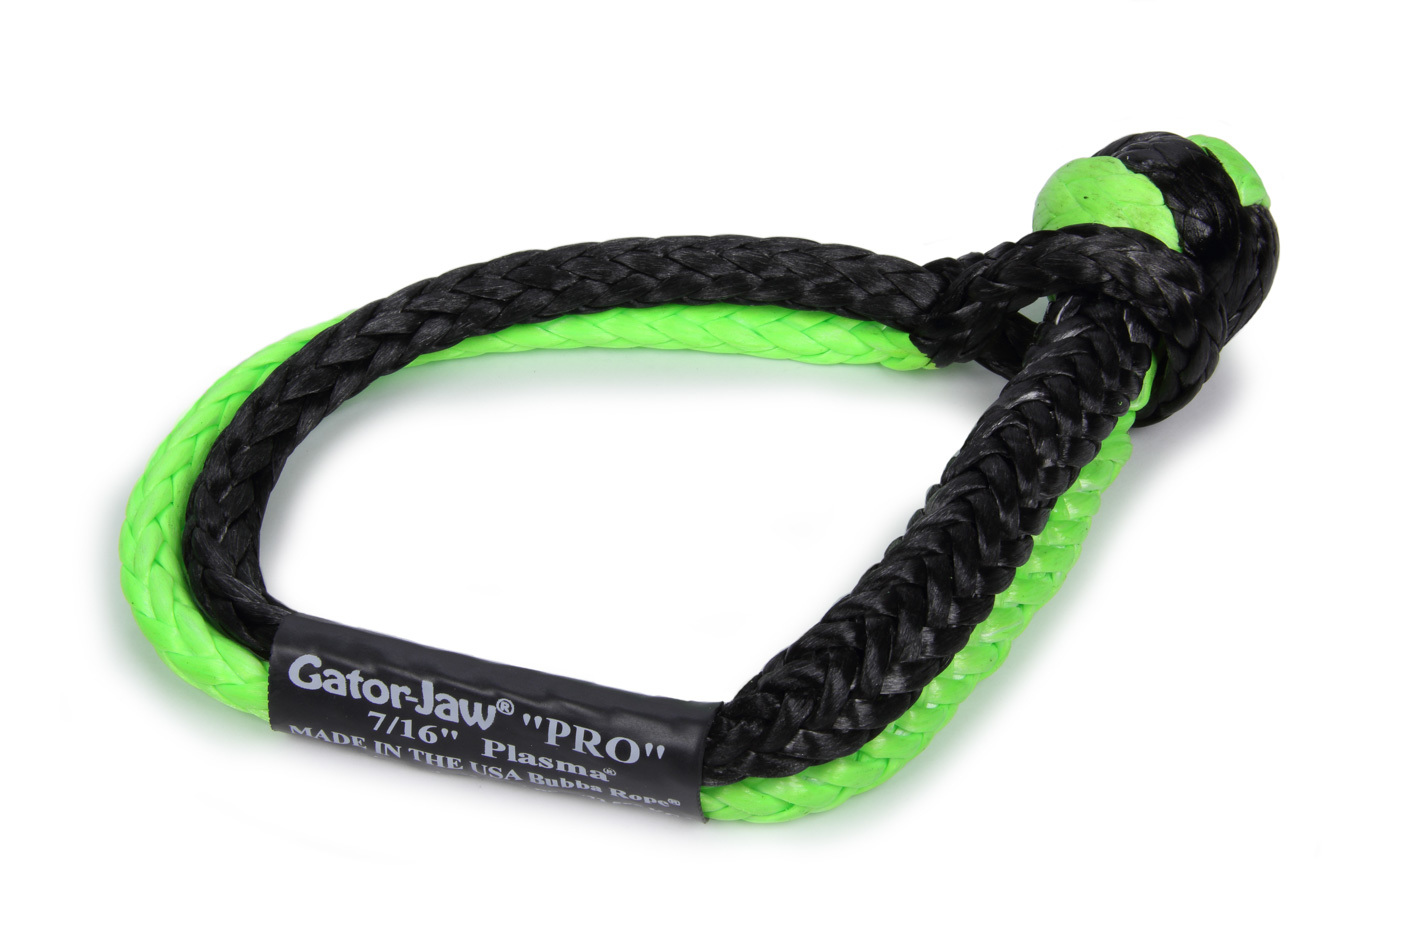 7/16in Gator Jaw Soft Shackle Green/Black